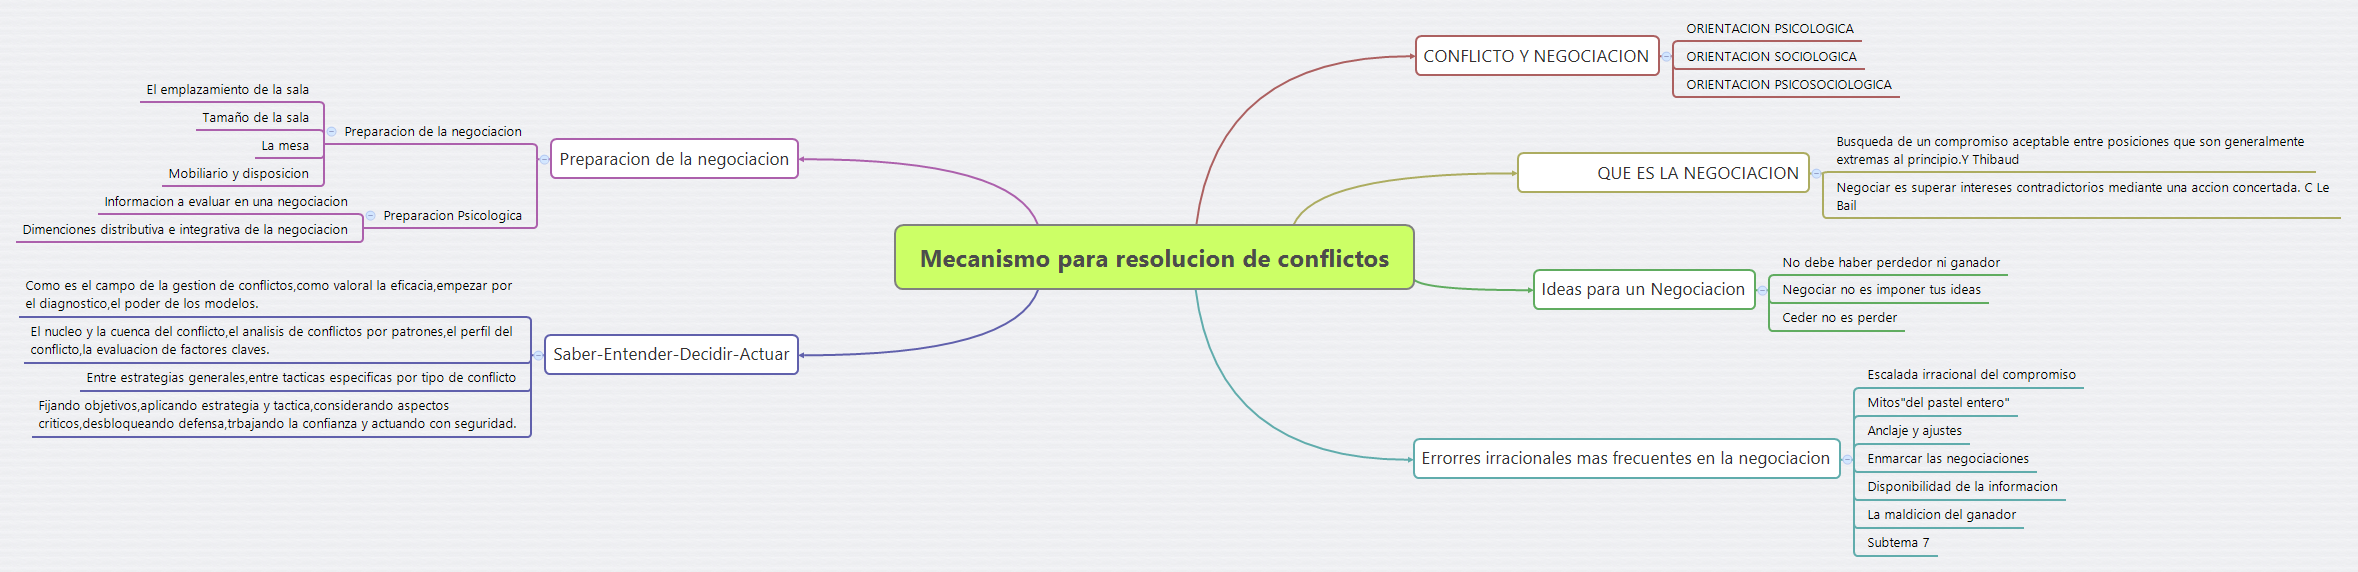 QUE ES SOCIOLOGIA - XMind: The Most Popular Mind Mapping Software on ...